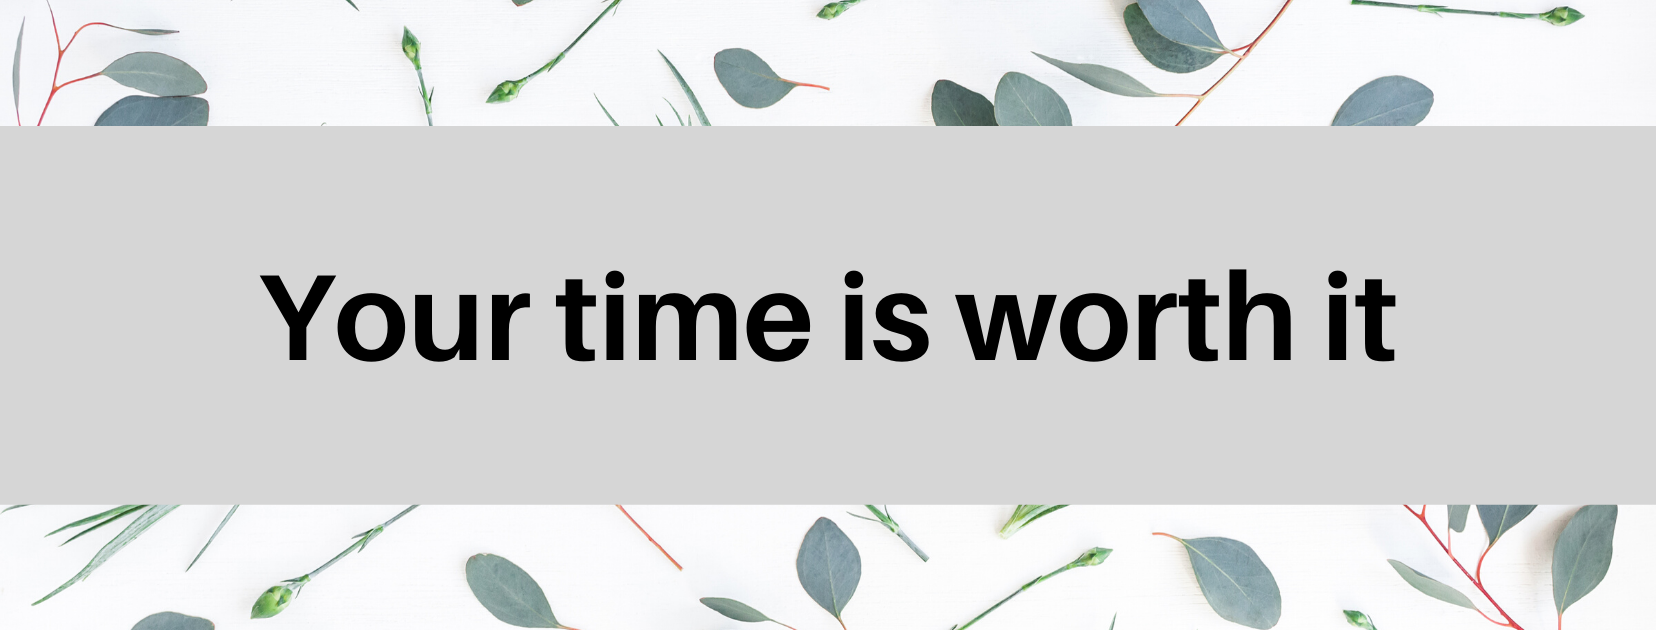 your time is worth saying no